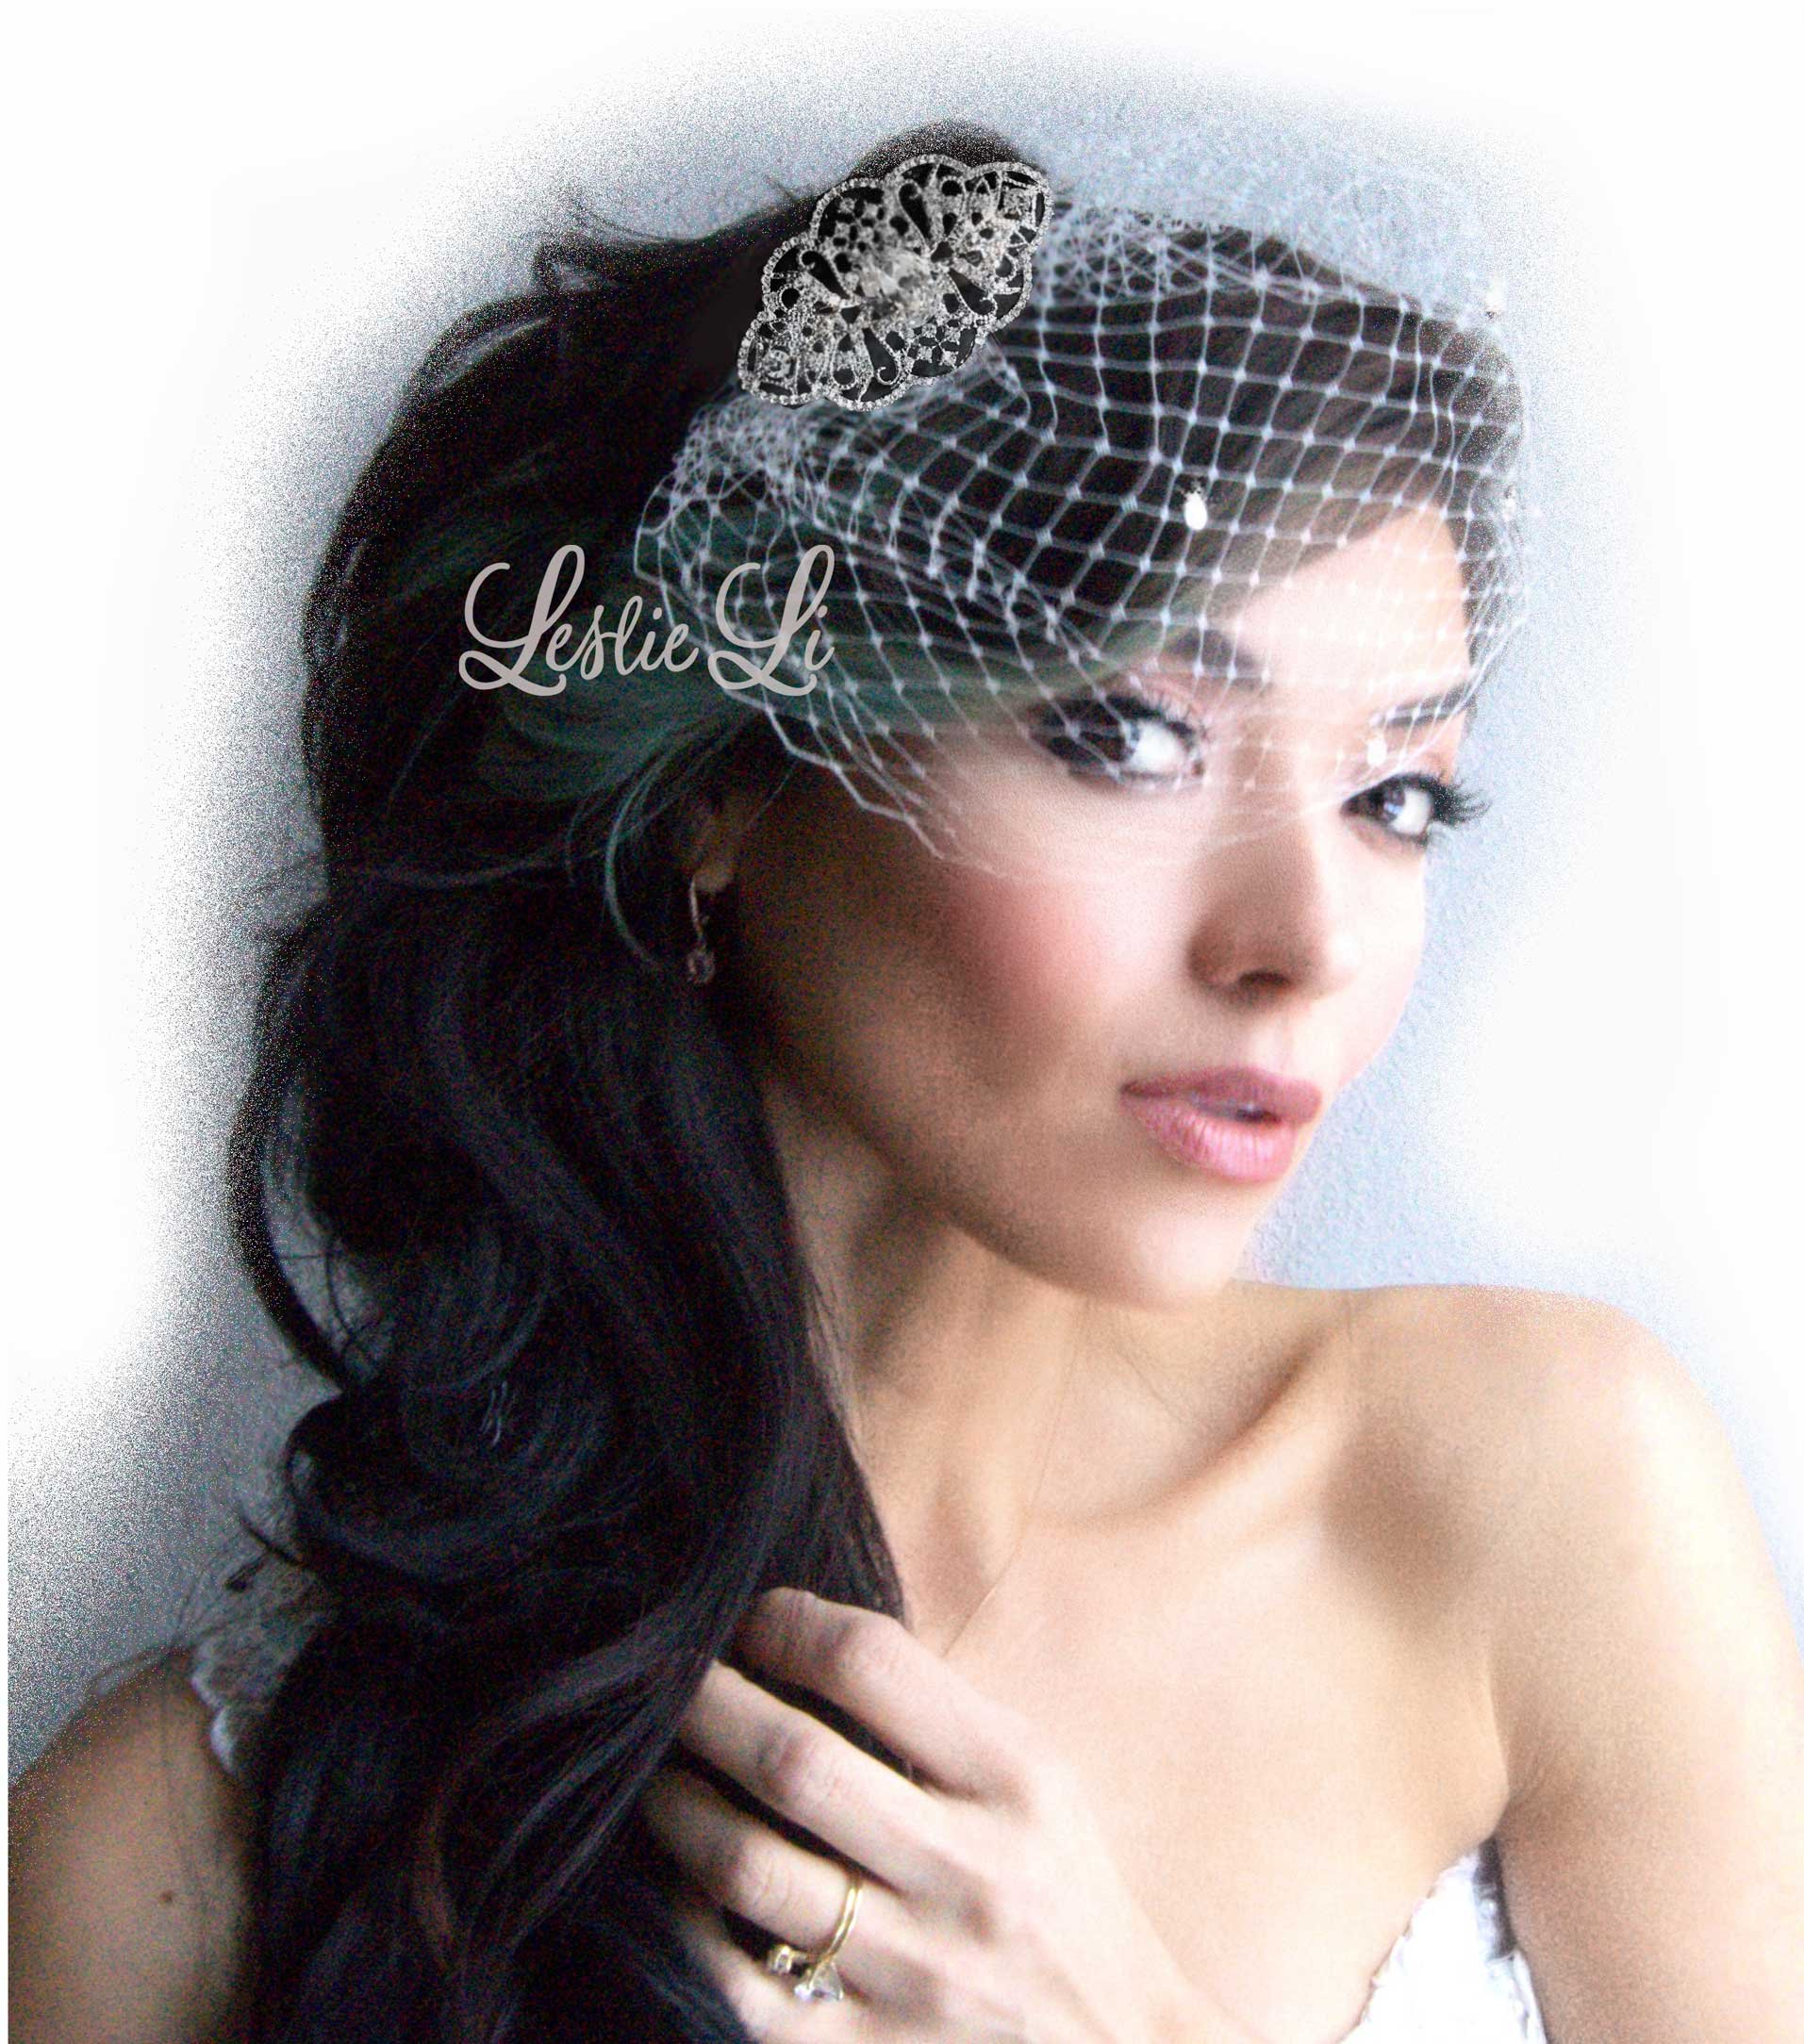 Leslie Li Women's Lacey Ribbons and Swirls Brooch and Petite Bridal Birdcage Veil French Net & Free Styling One Size White/Silver 27-531